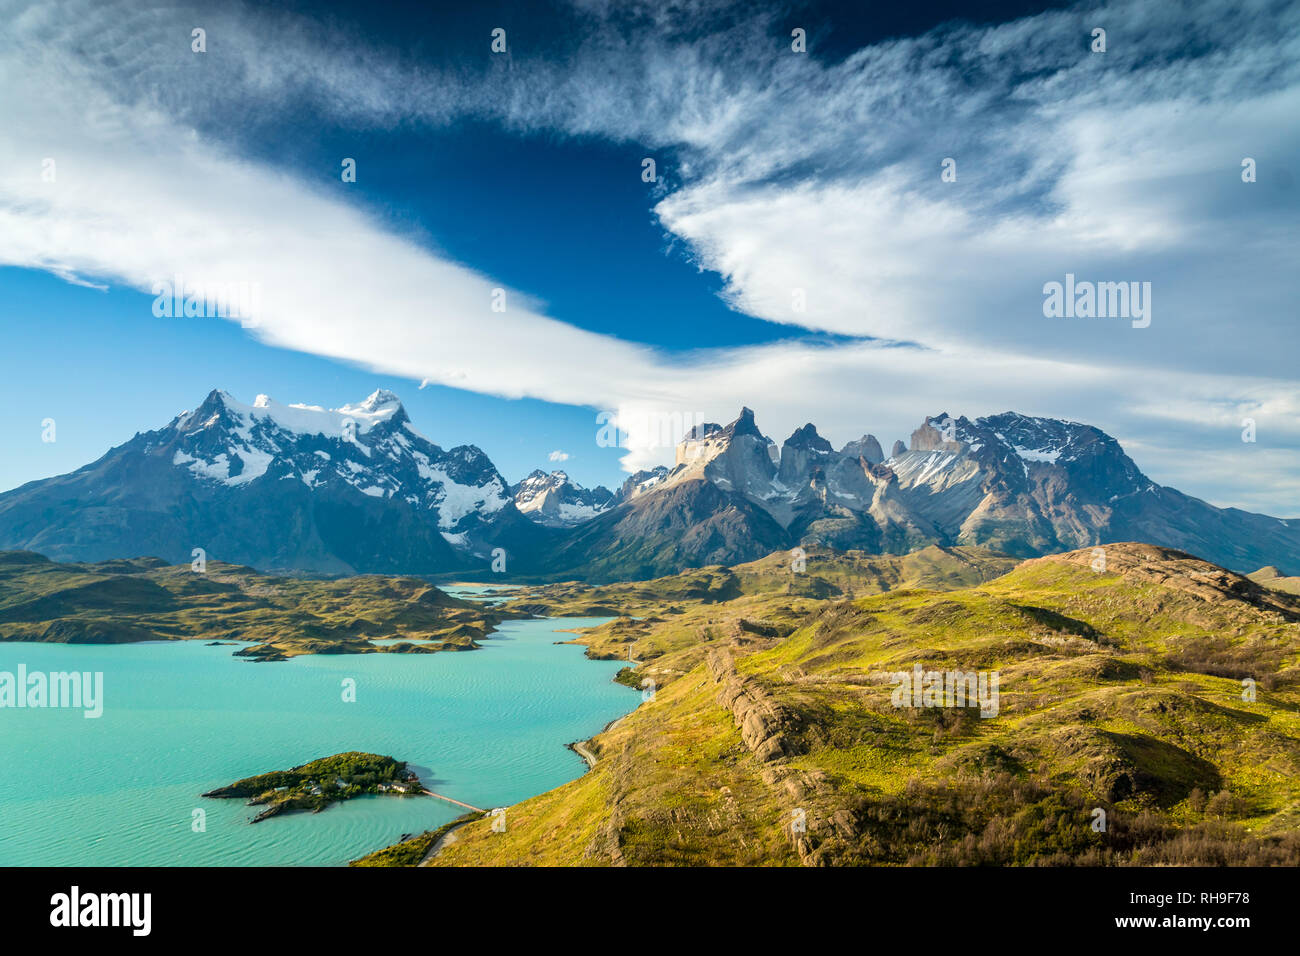 Lago Pehoé and the worldfamous view of the Torres del Paine Massiv - Stock Image